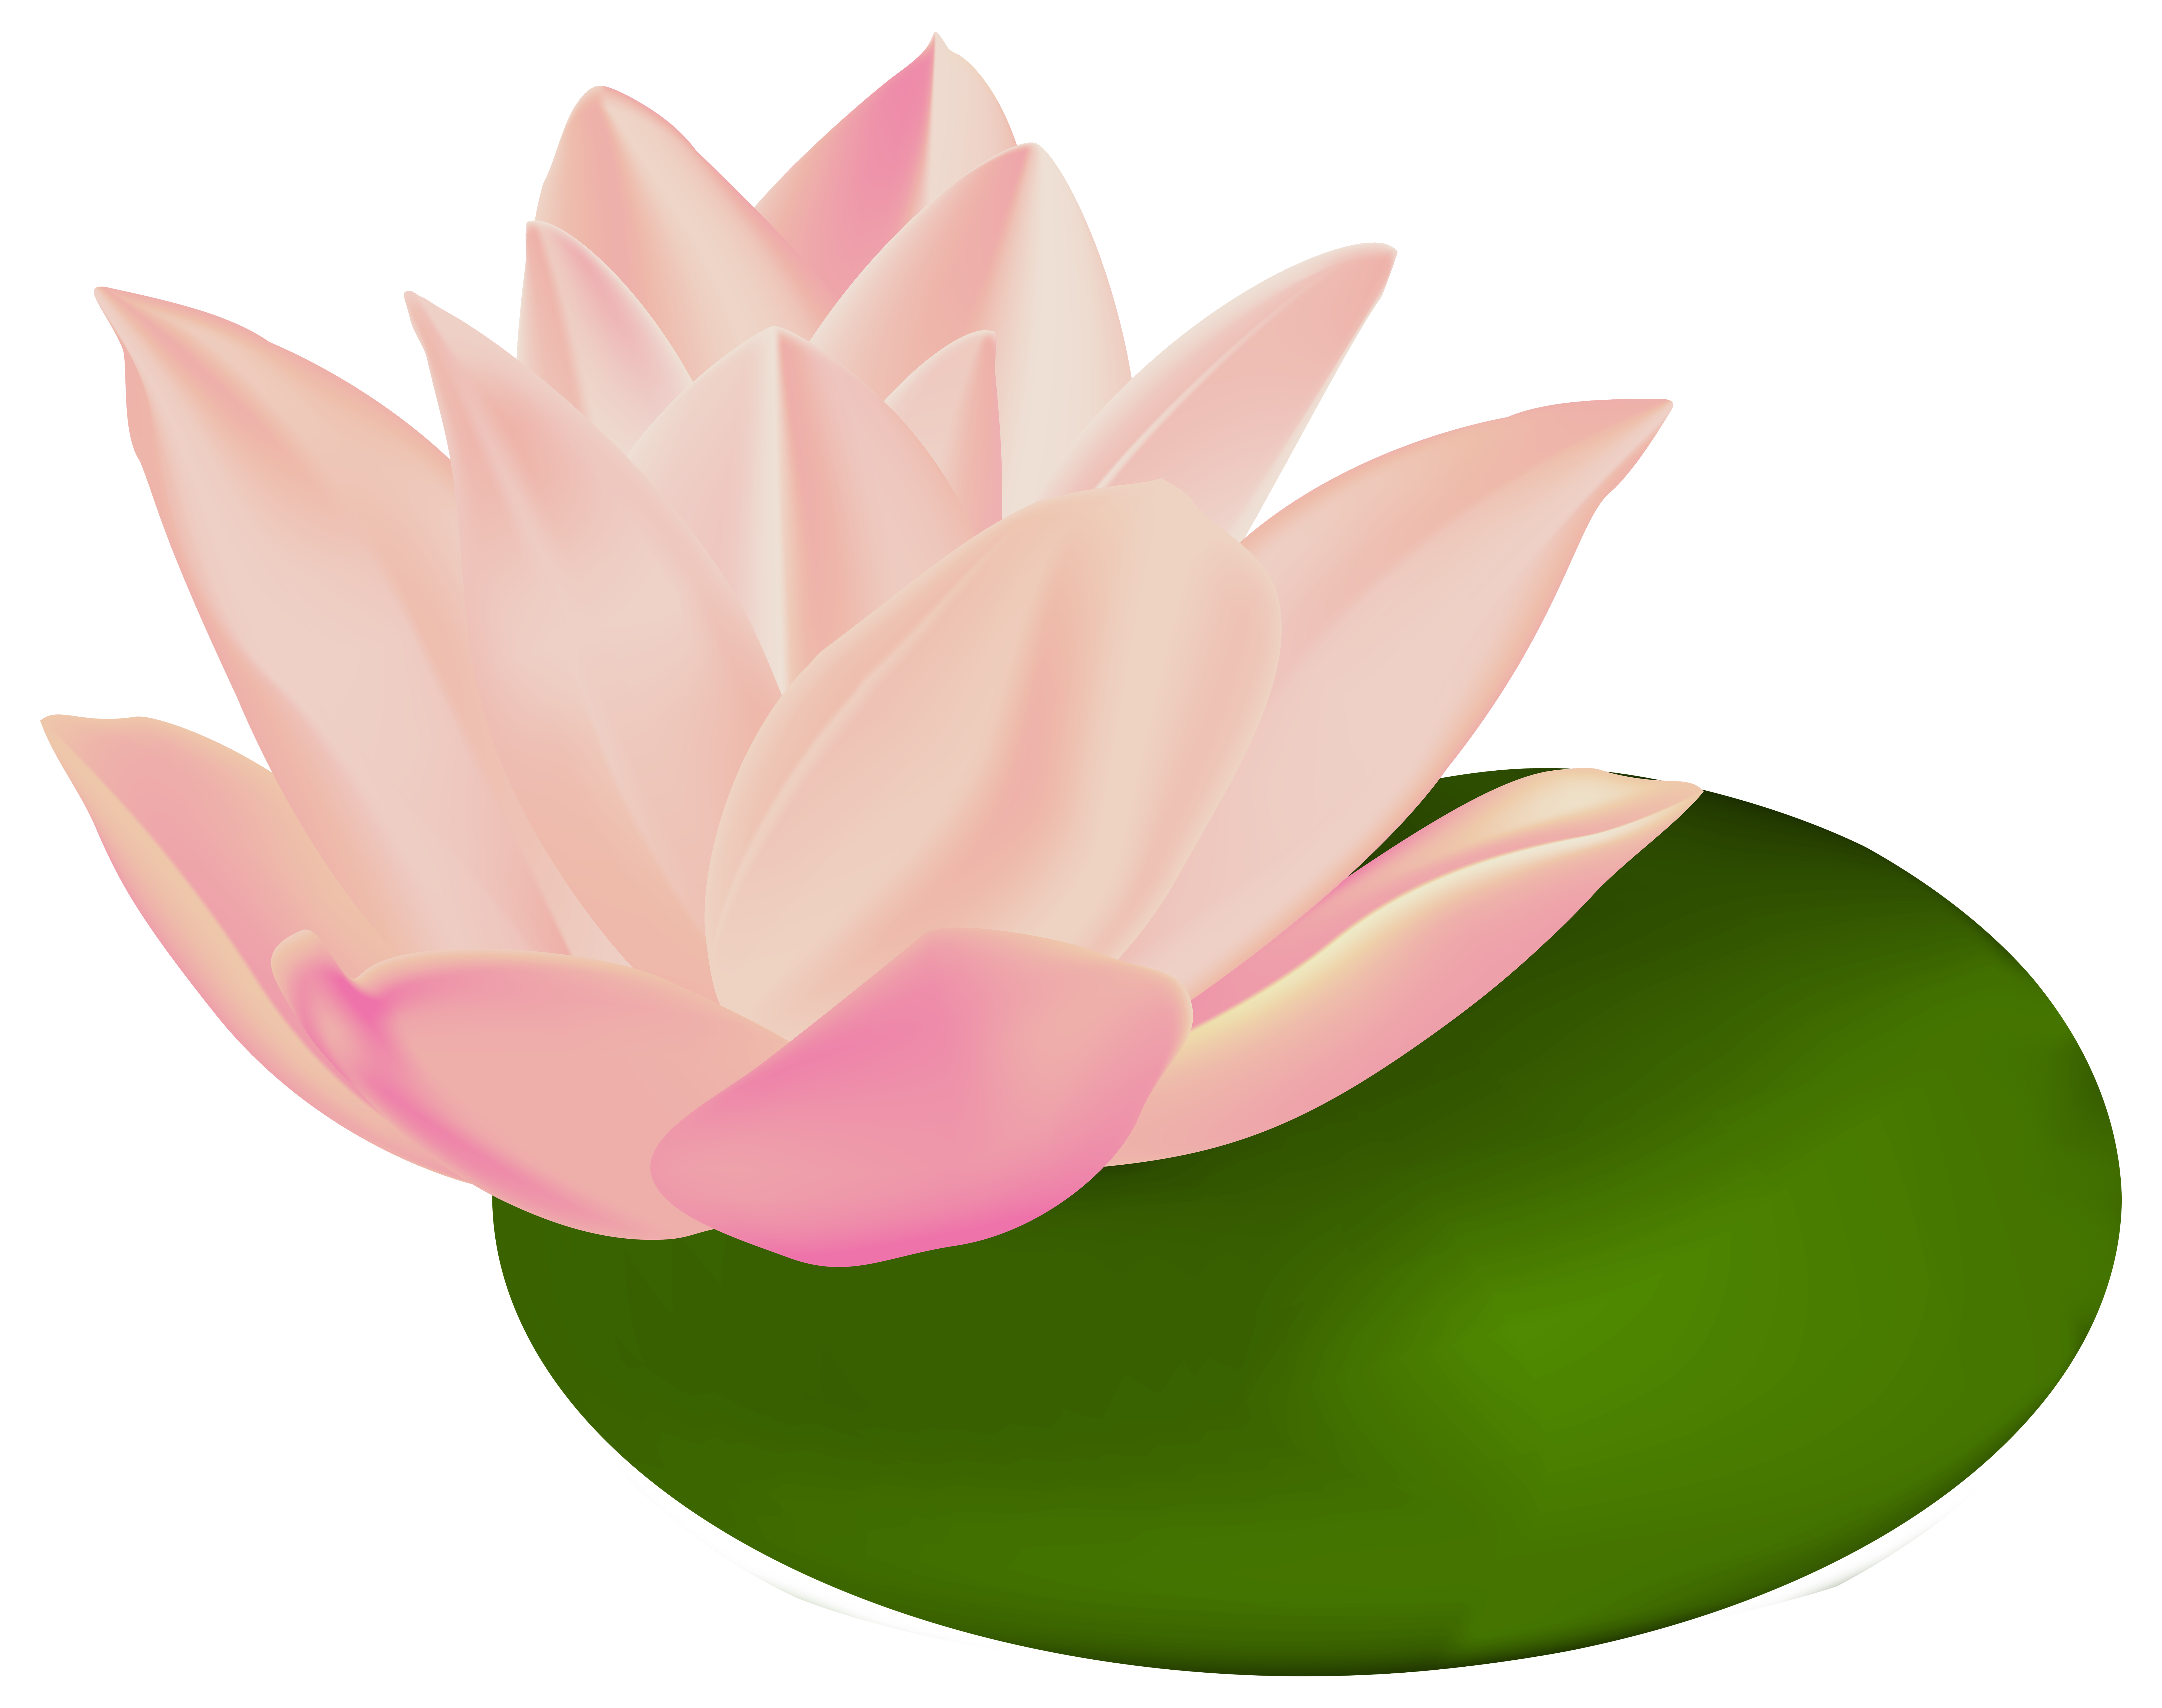 Water lily transparent clip. Lotus clipart waterlily